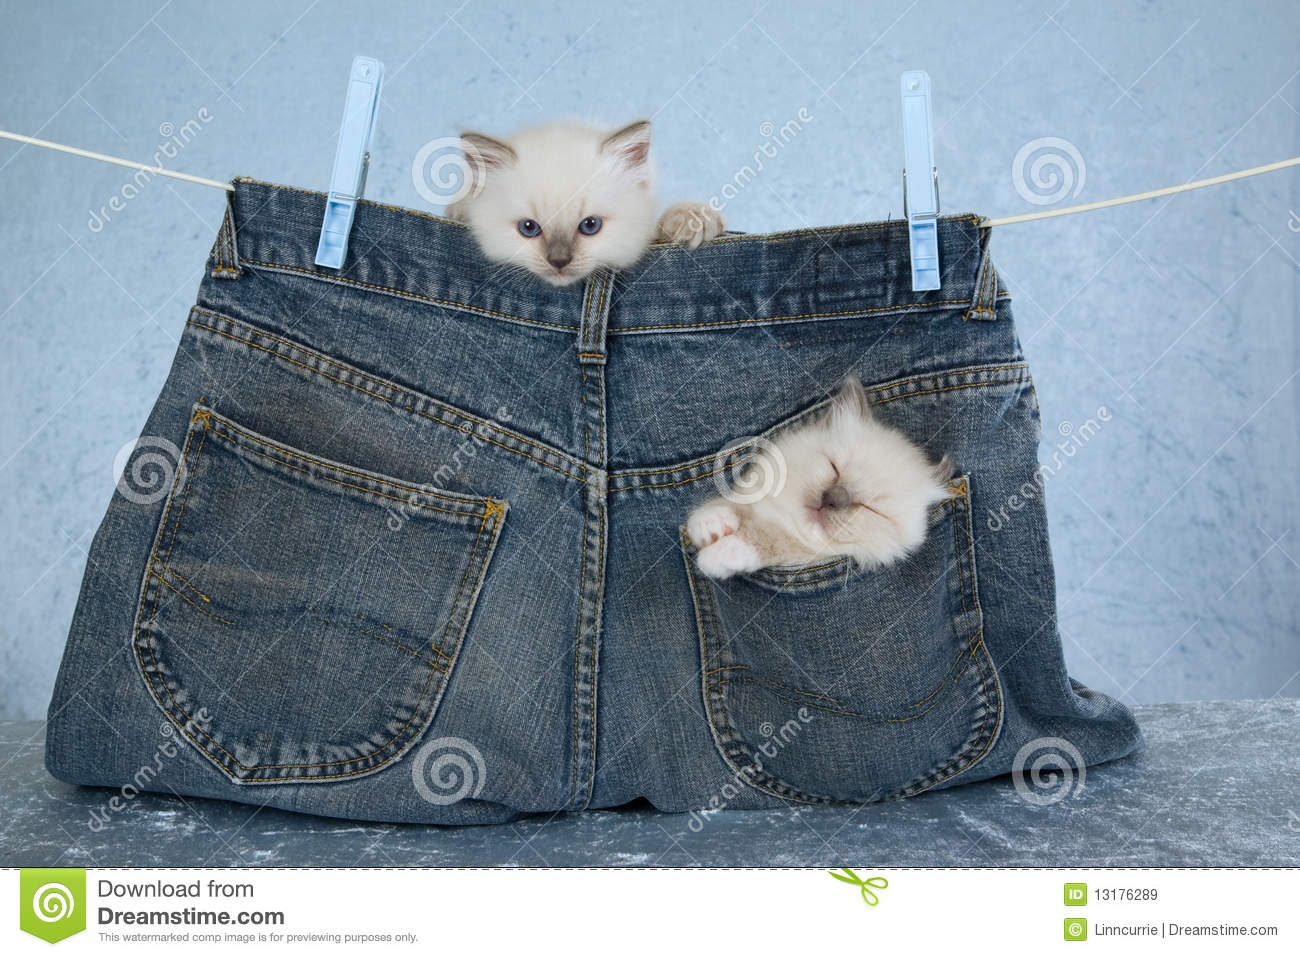 Cute Kitty Cat Wallpapers Ragdoll Kittens In Pocket Of Pants Royalty Free Stock